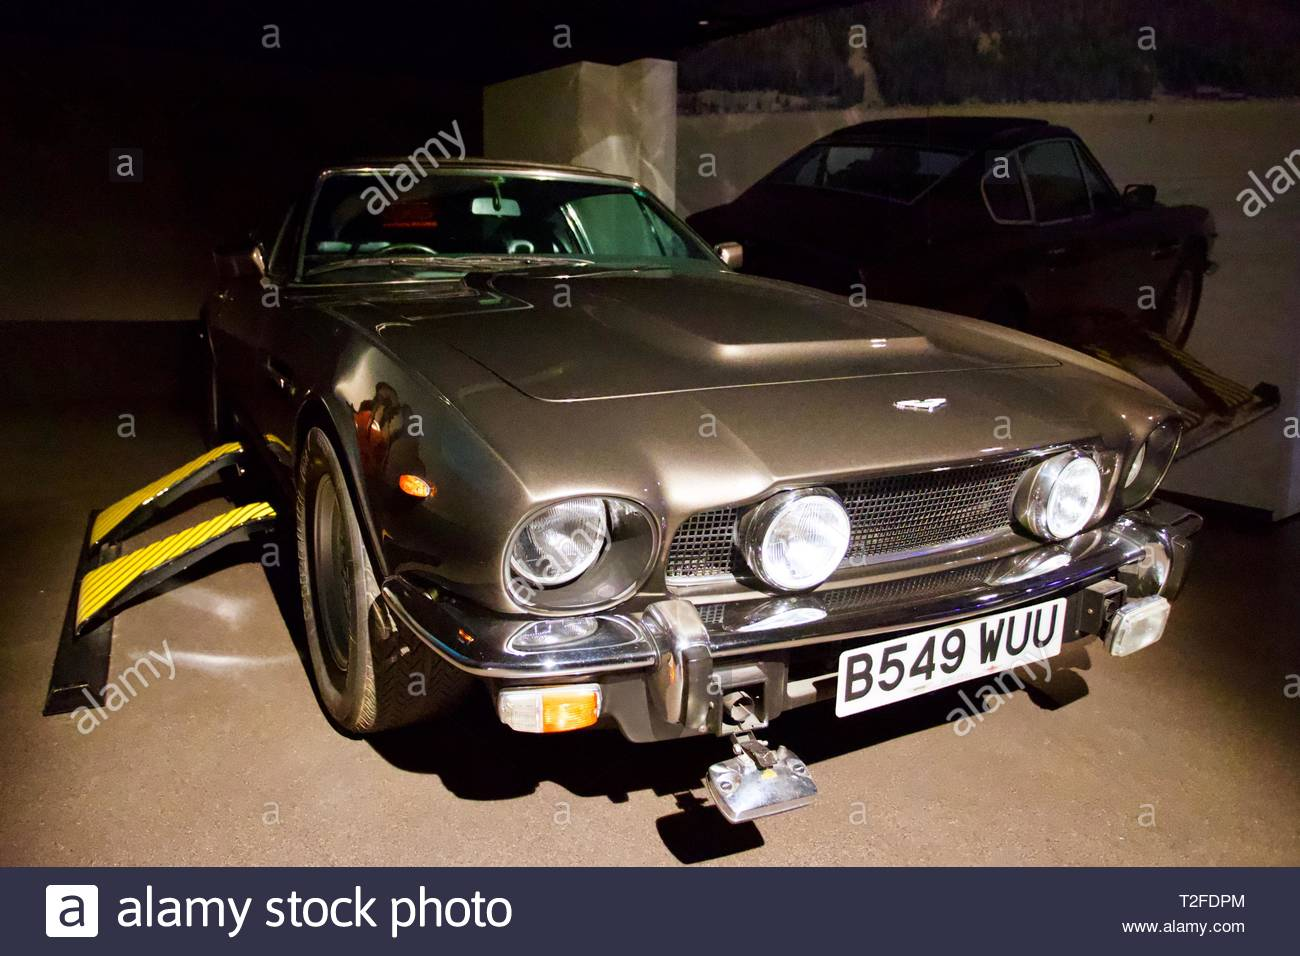 Bond in Motion. London Film Museum. The Living Daylights 1987 - Aston Martin V8 Vantage Volante 1985. London, England. - Stock Image